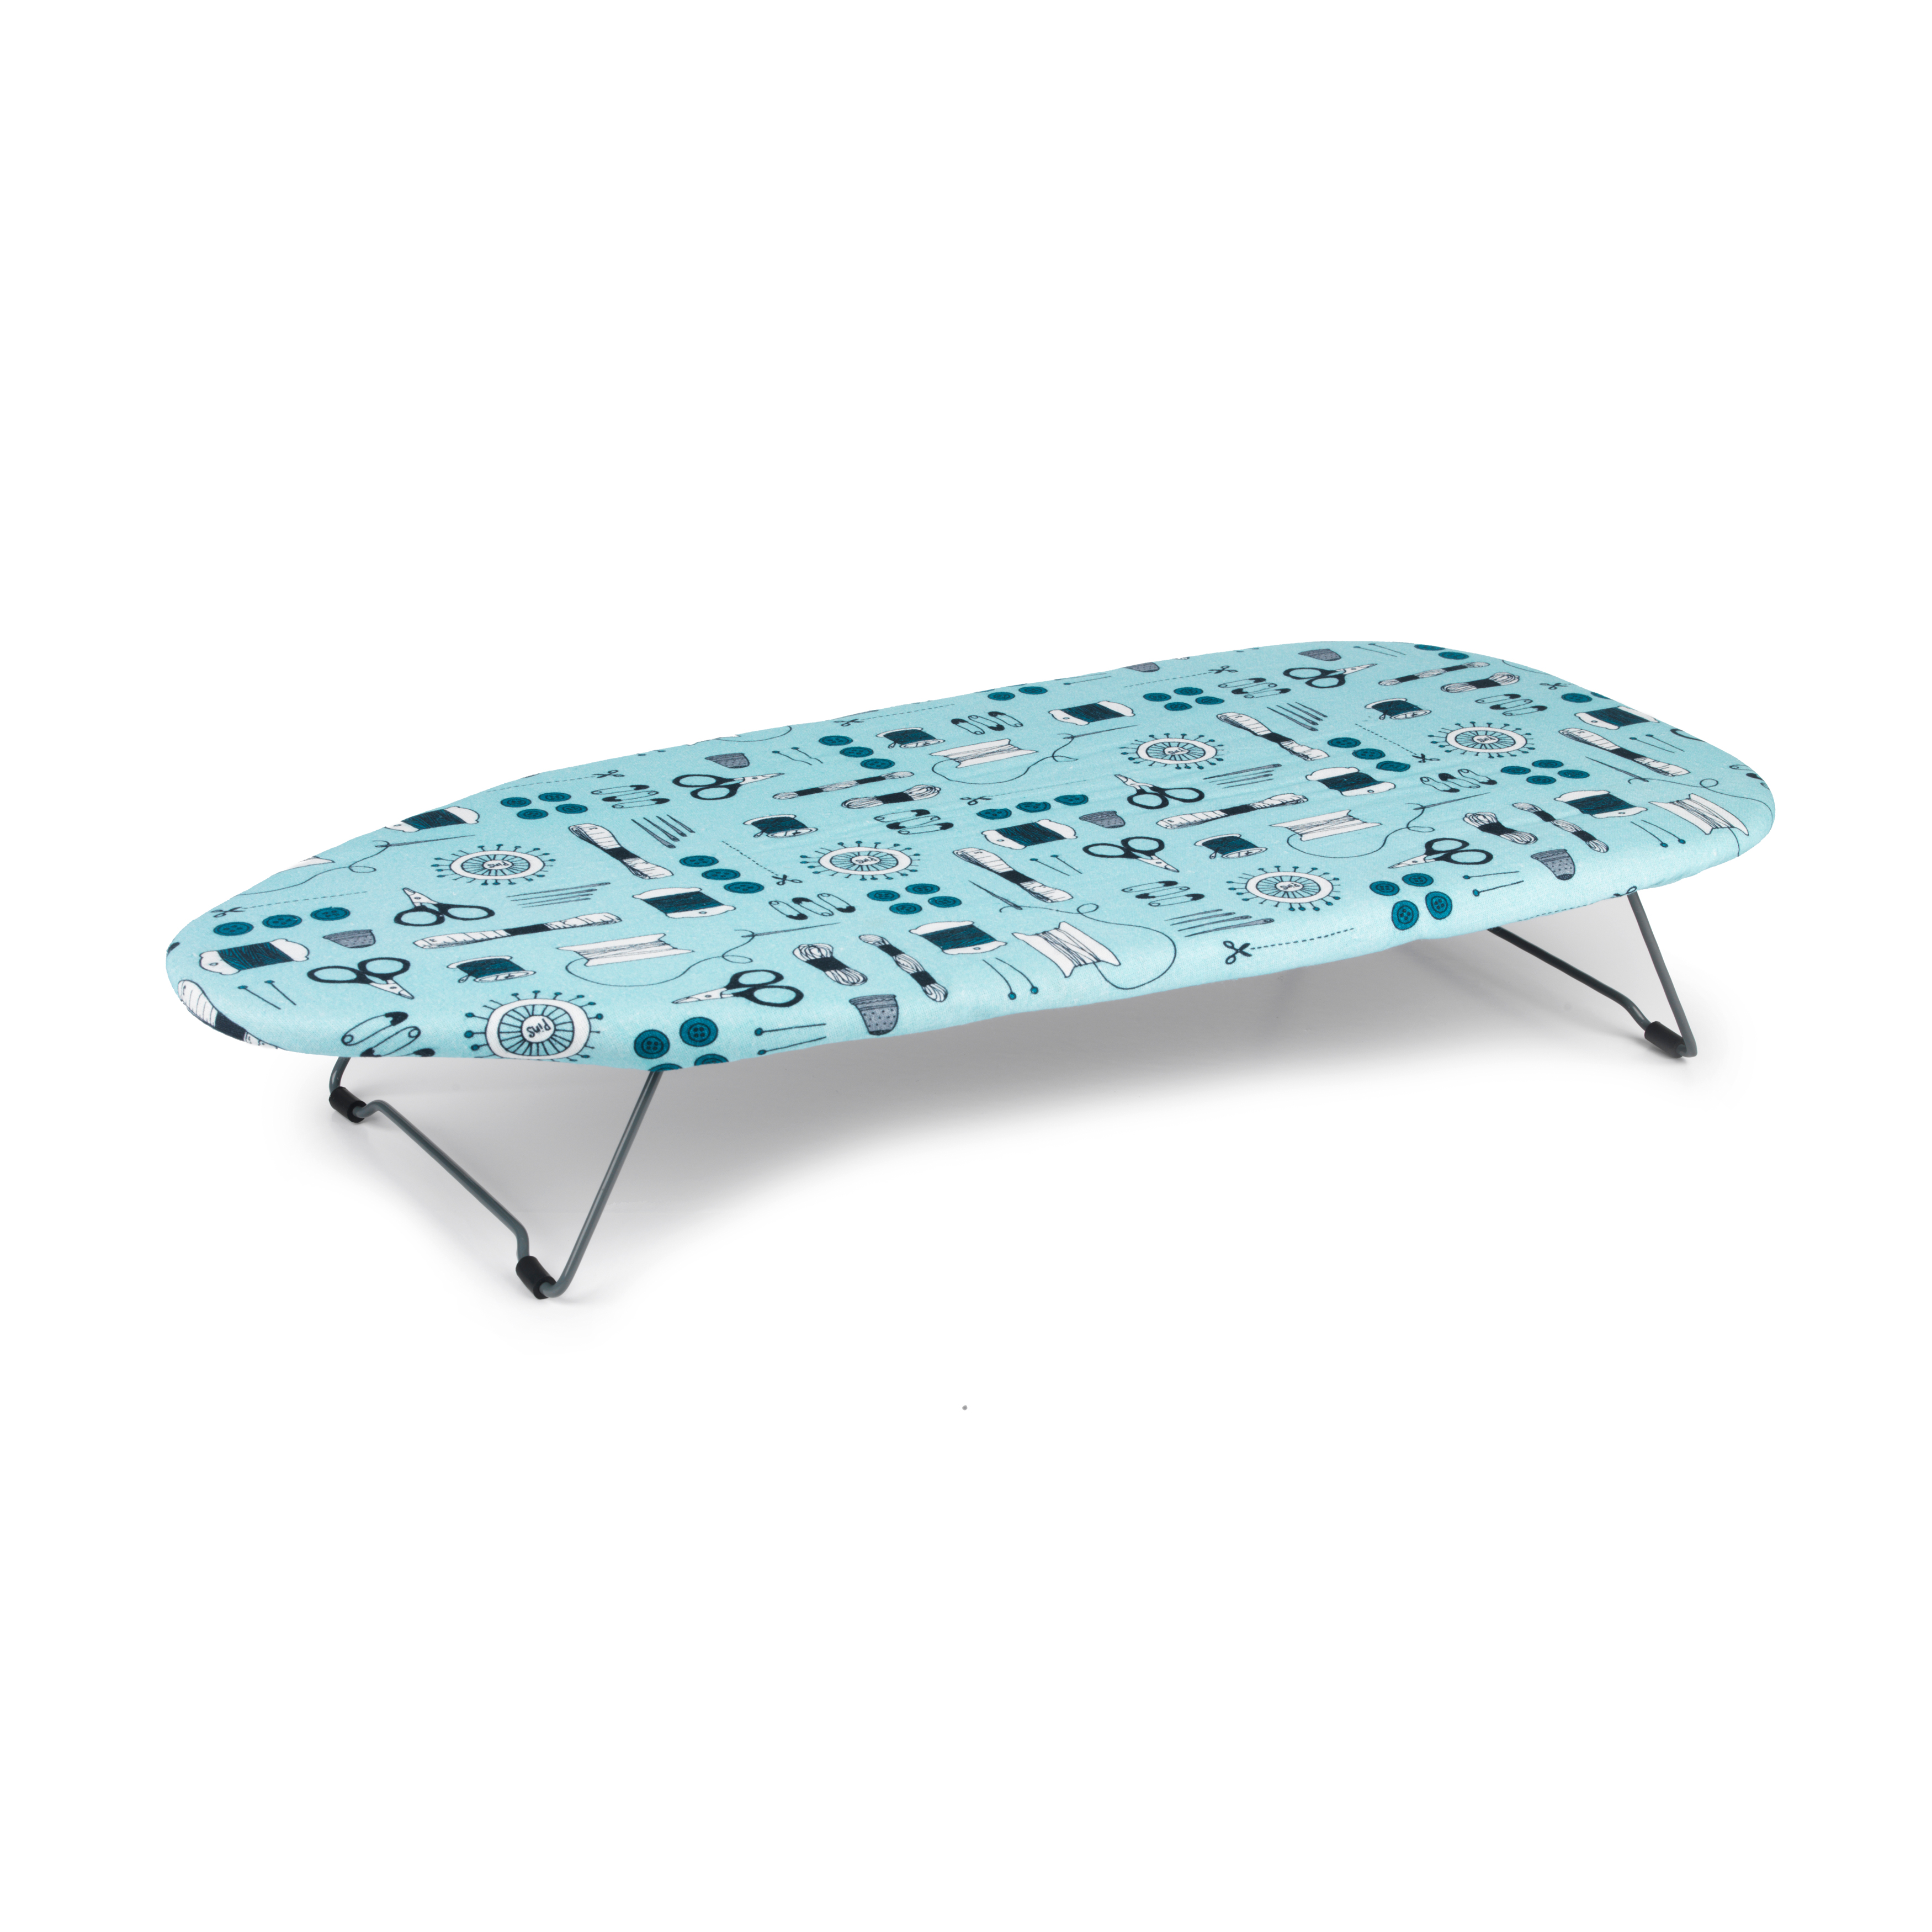 Beldray La023735 Sewing Print Table Top Ironing Board 76 X 33cm Laundry No1brands4you